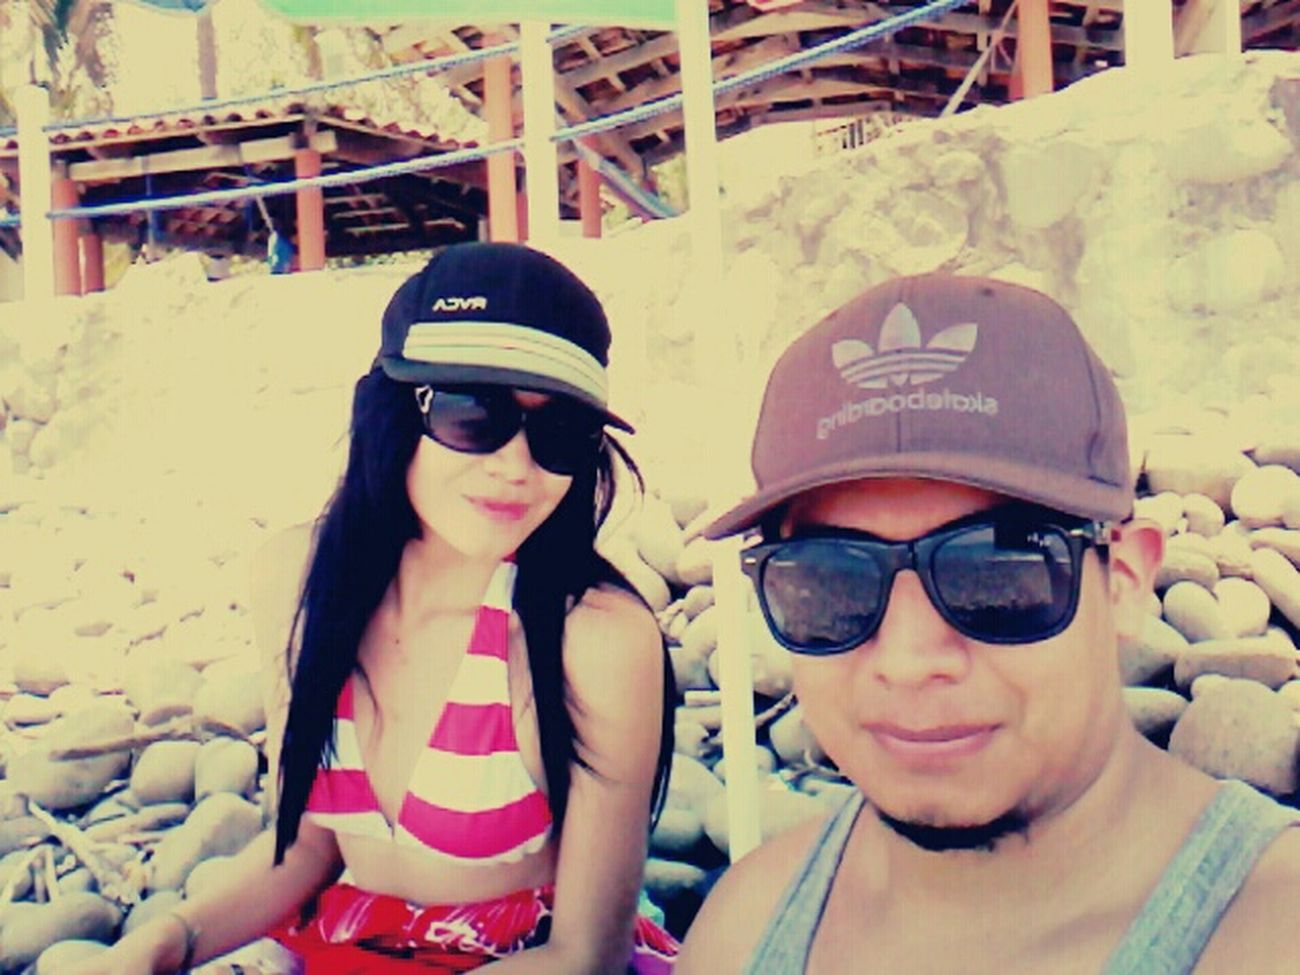 Chris&cleli Enjoying The Sun Relaxing Sunshine Beach Life Beach Day Enormemente Feli! Selfie ♥ Enjoying Life With My Love ❤